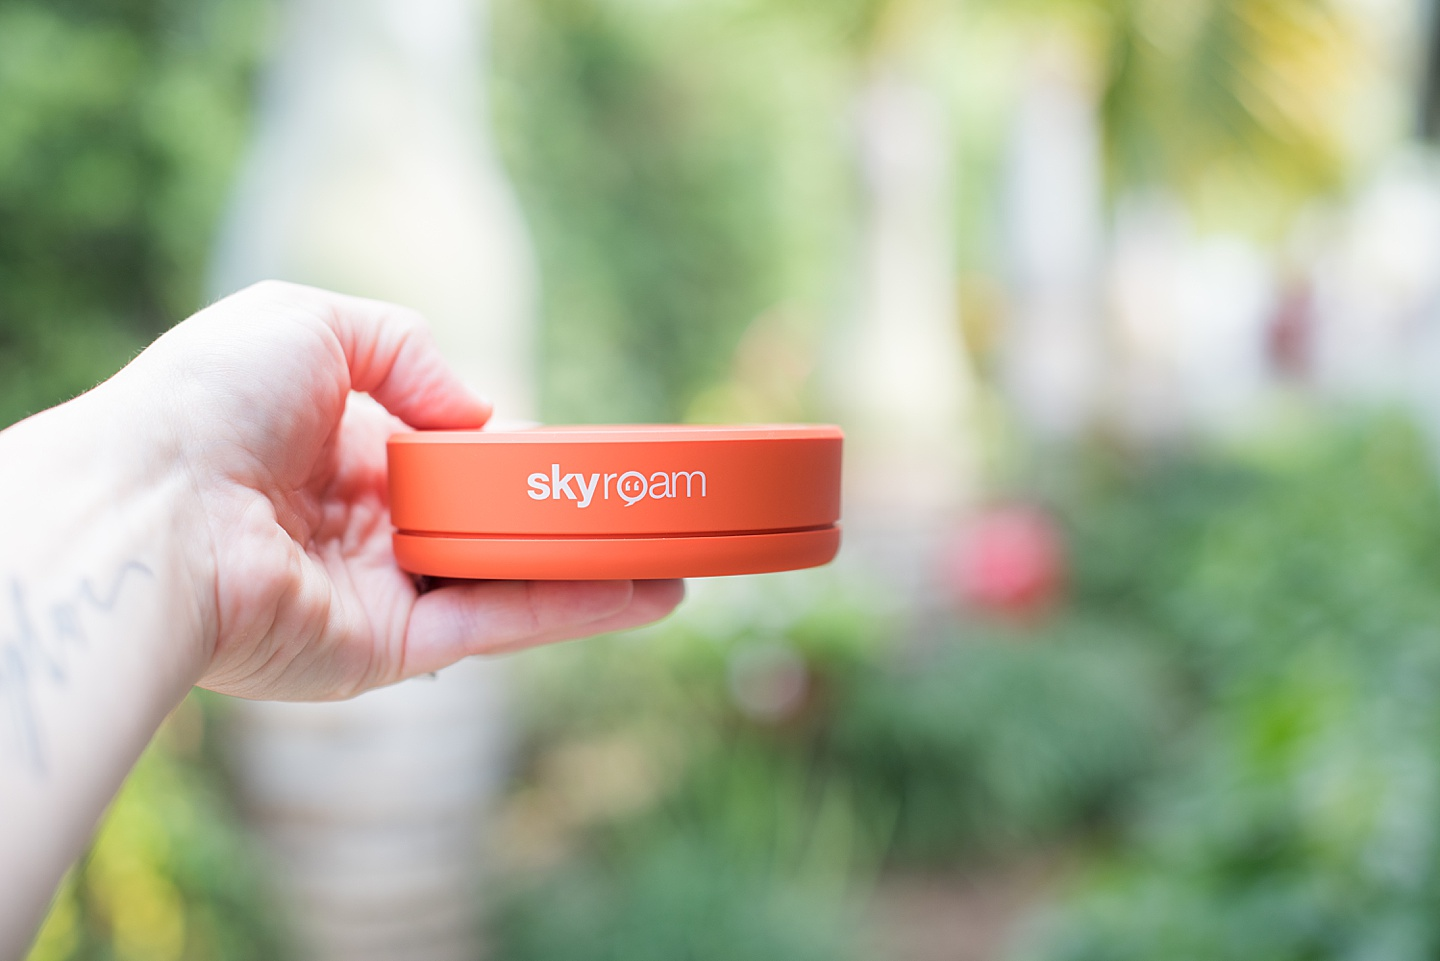 Portable travel wifi hotspot that will fit in clothes as a pocket wifi device on vacations! Skyroam is the best travel gift and essential technology for wanderlusters on the go. #skyroam #sometimeshome #wifihotspot #pocketwifi #traveltechnology